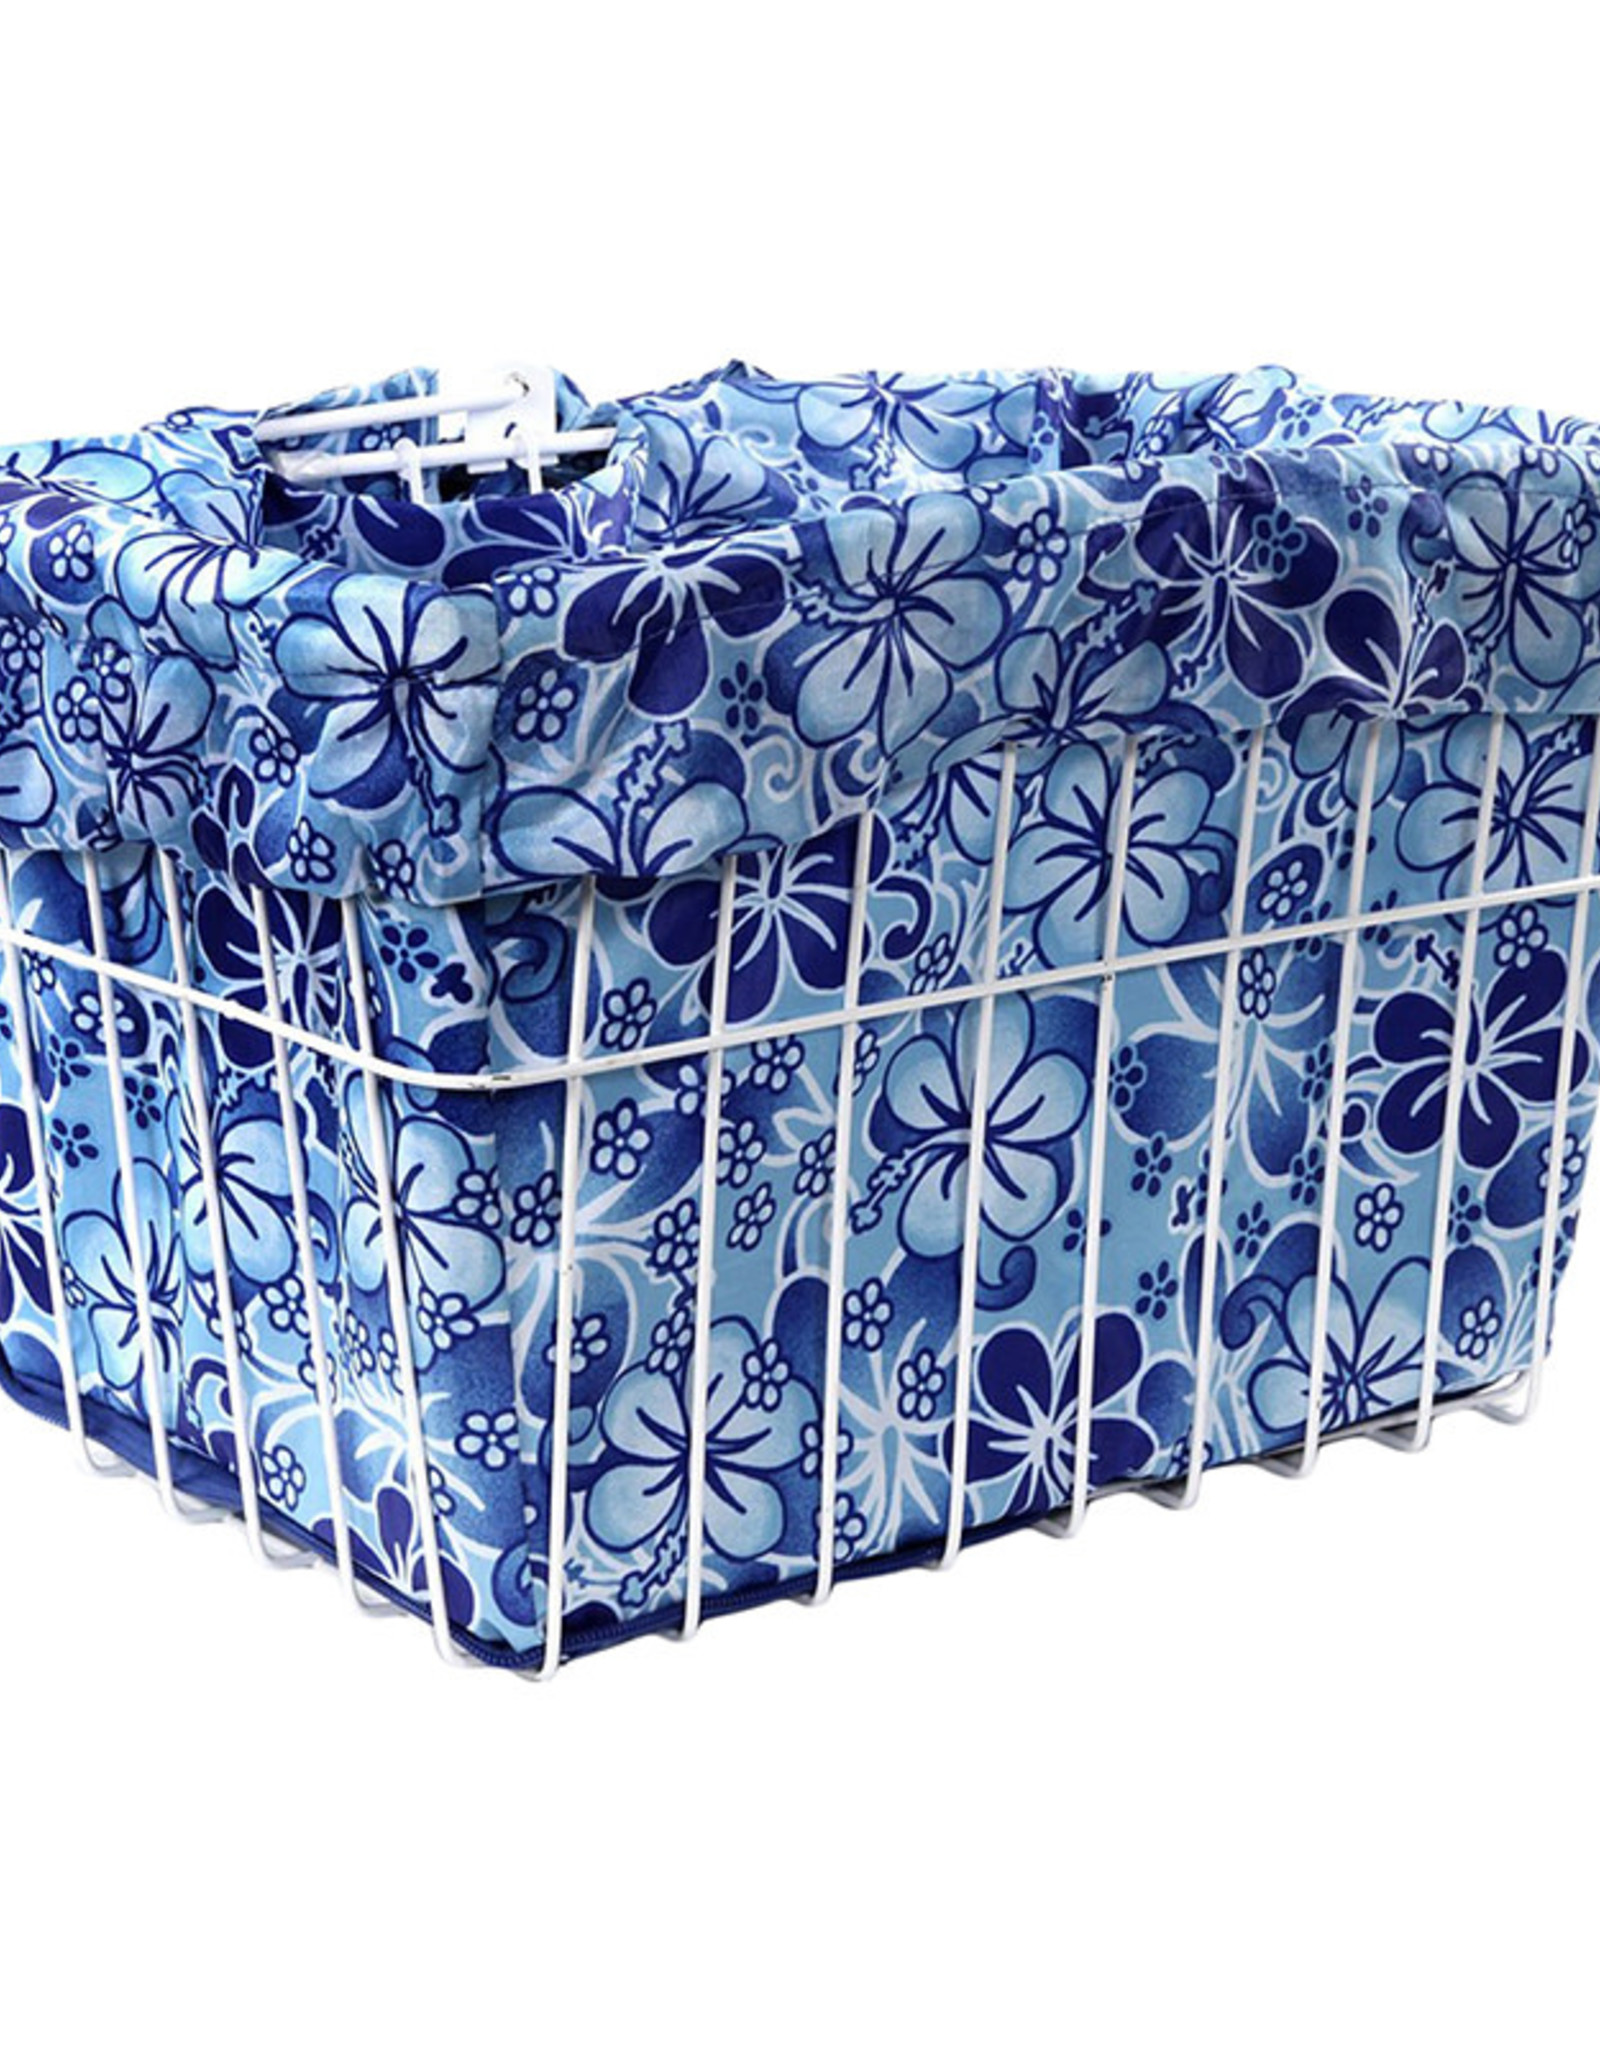 CRUISER CANDY Reversible Bike Basket Liner,  Standard, Hawaiian, Blue